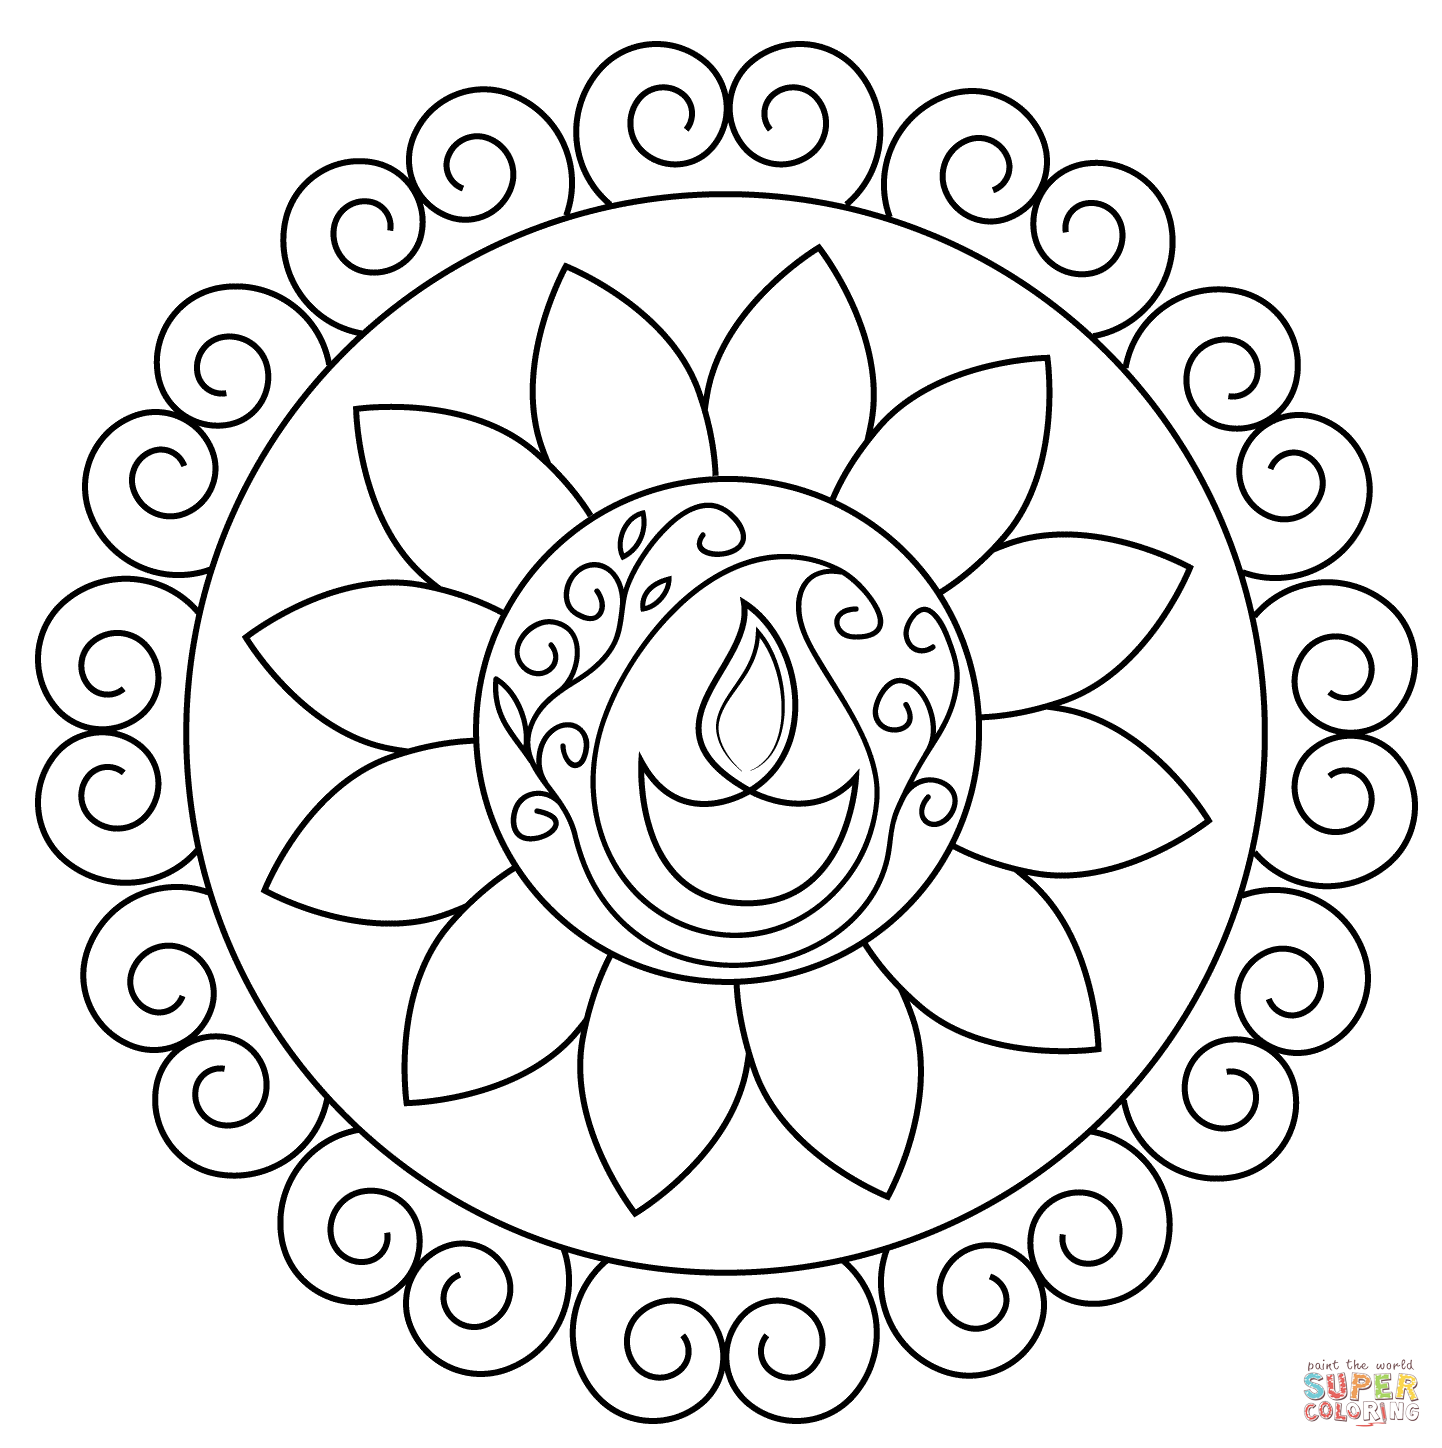 Printable Diwali Coloring Pages Detailed Coloring Pages Diwali Colours Free Printable Coloring Pages